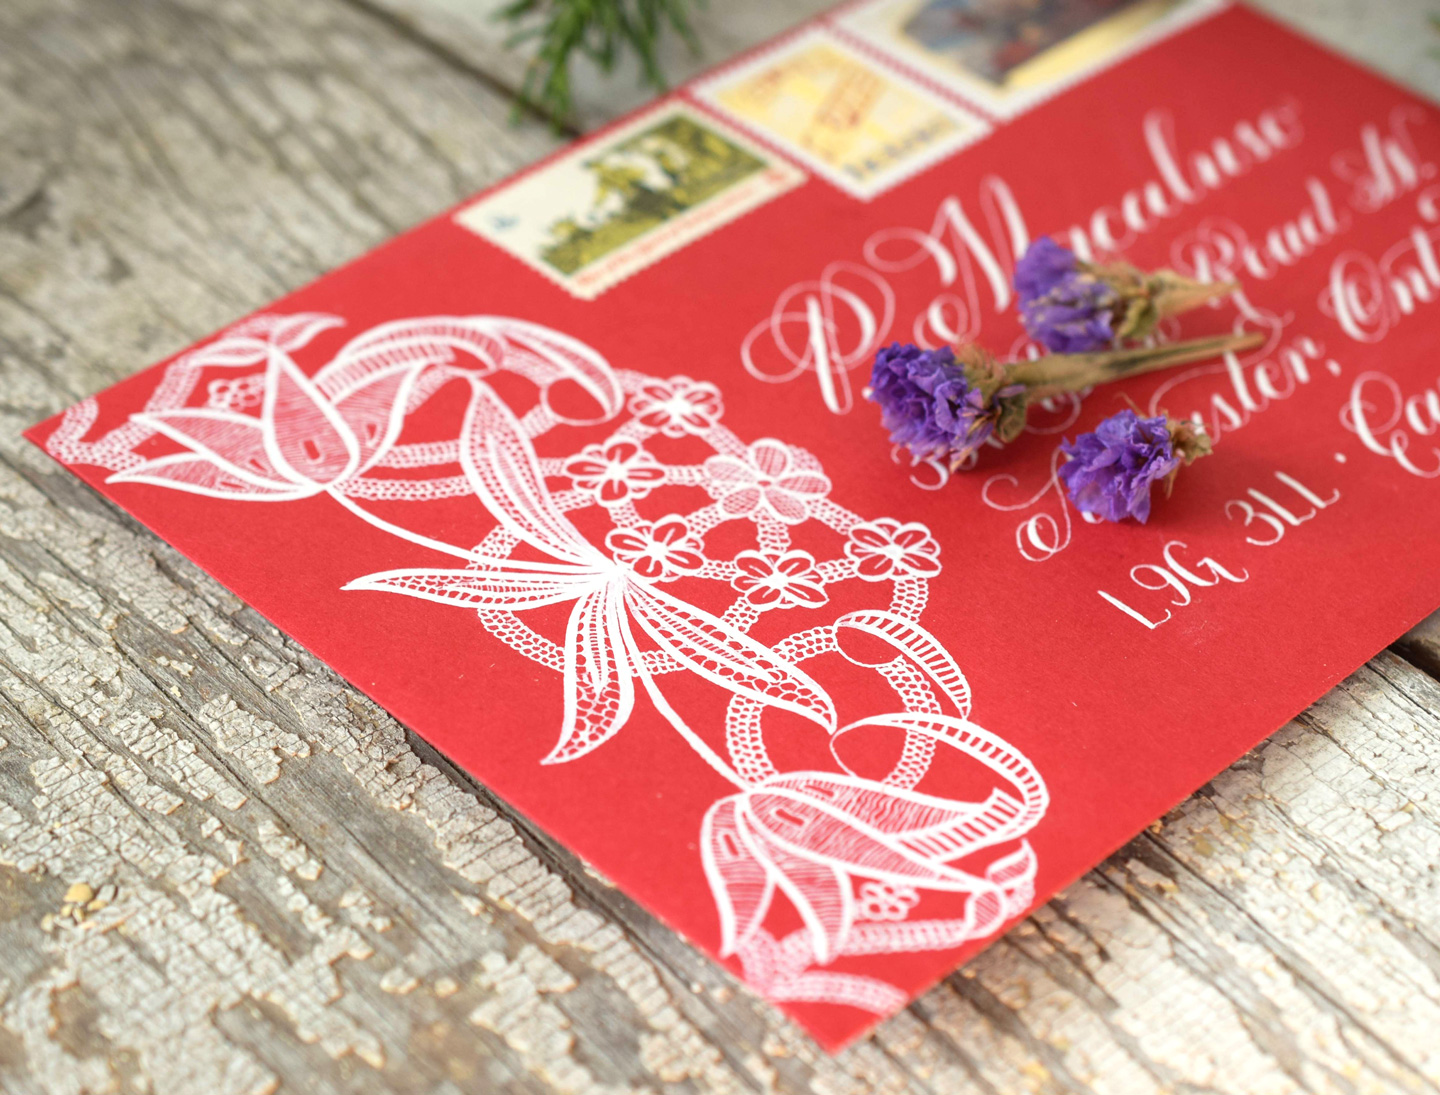 Floral Illustrated Lace Motif